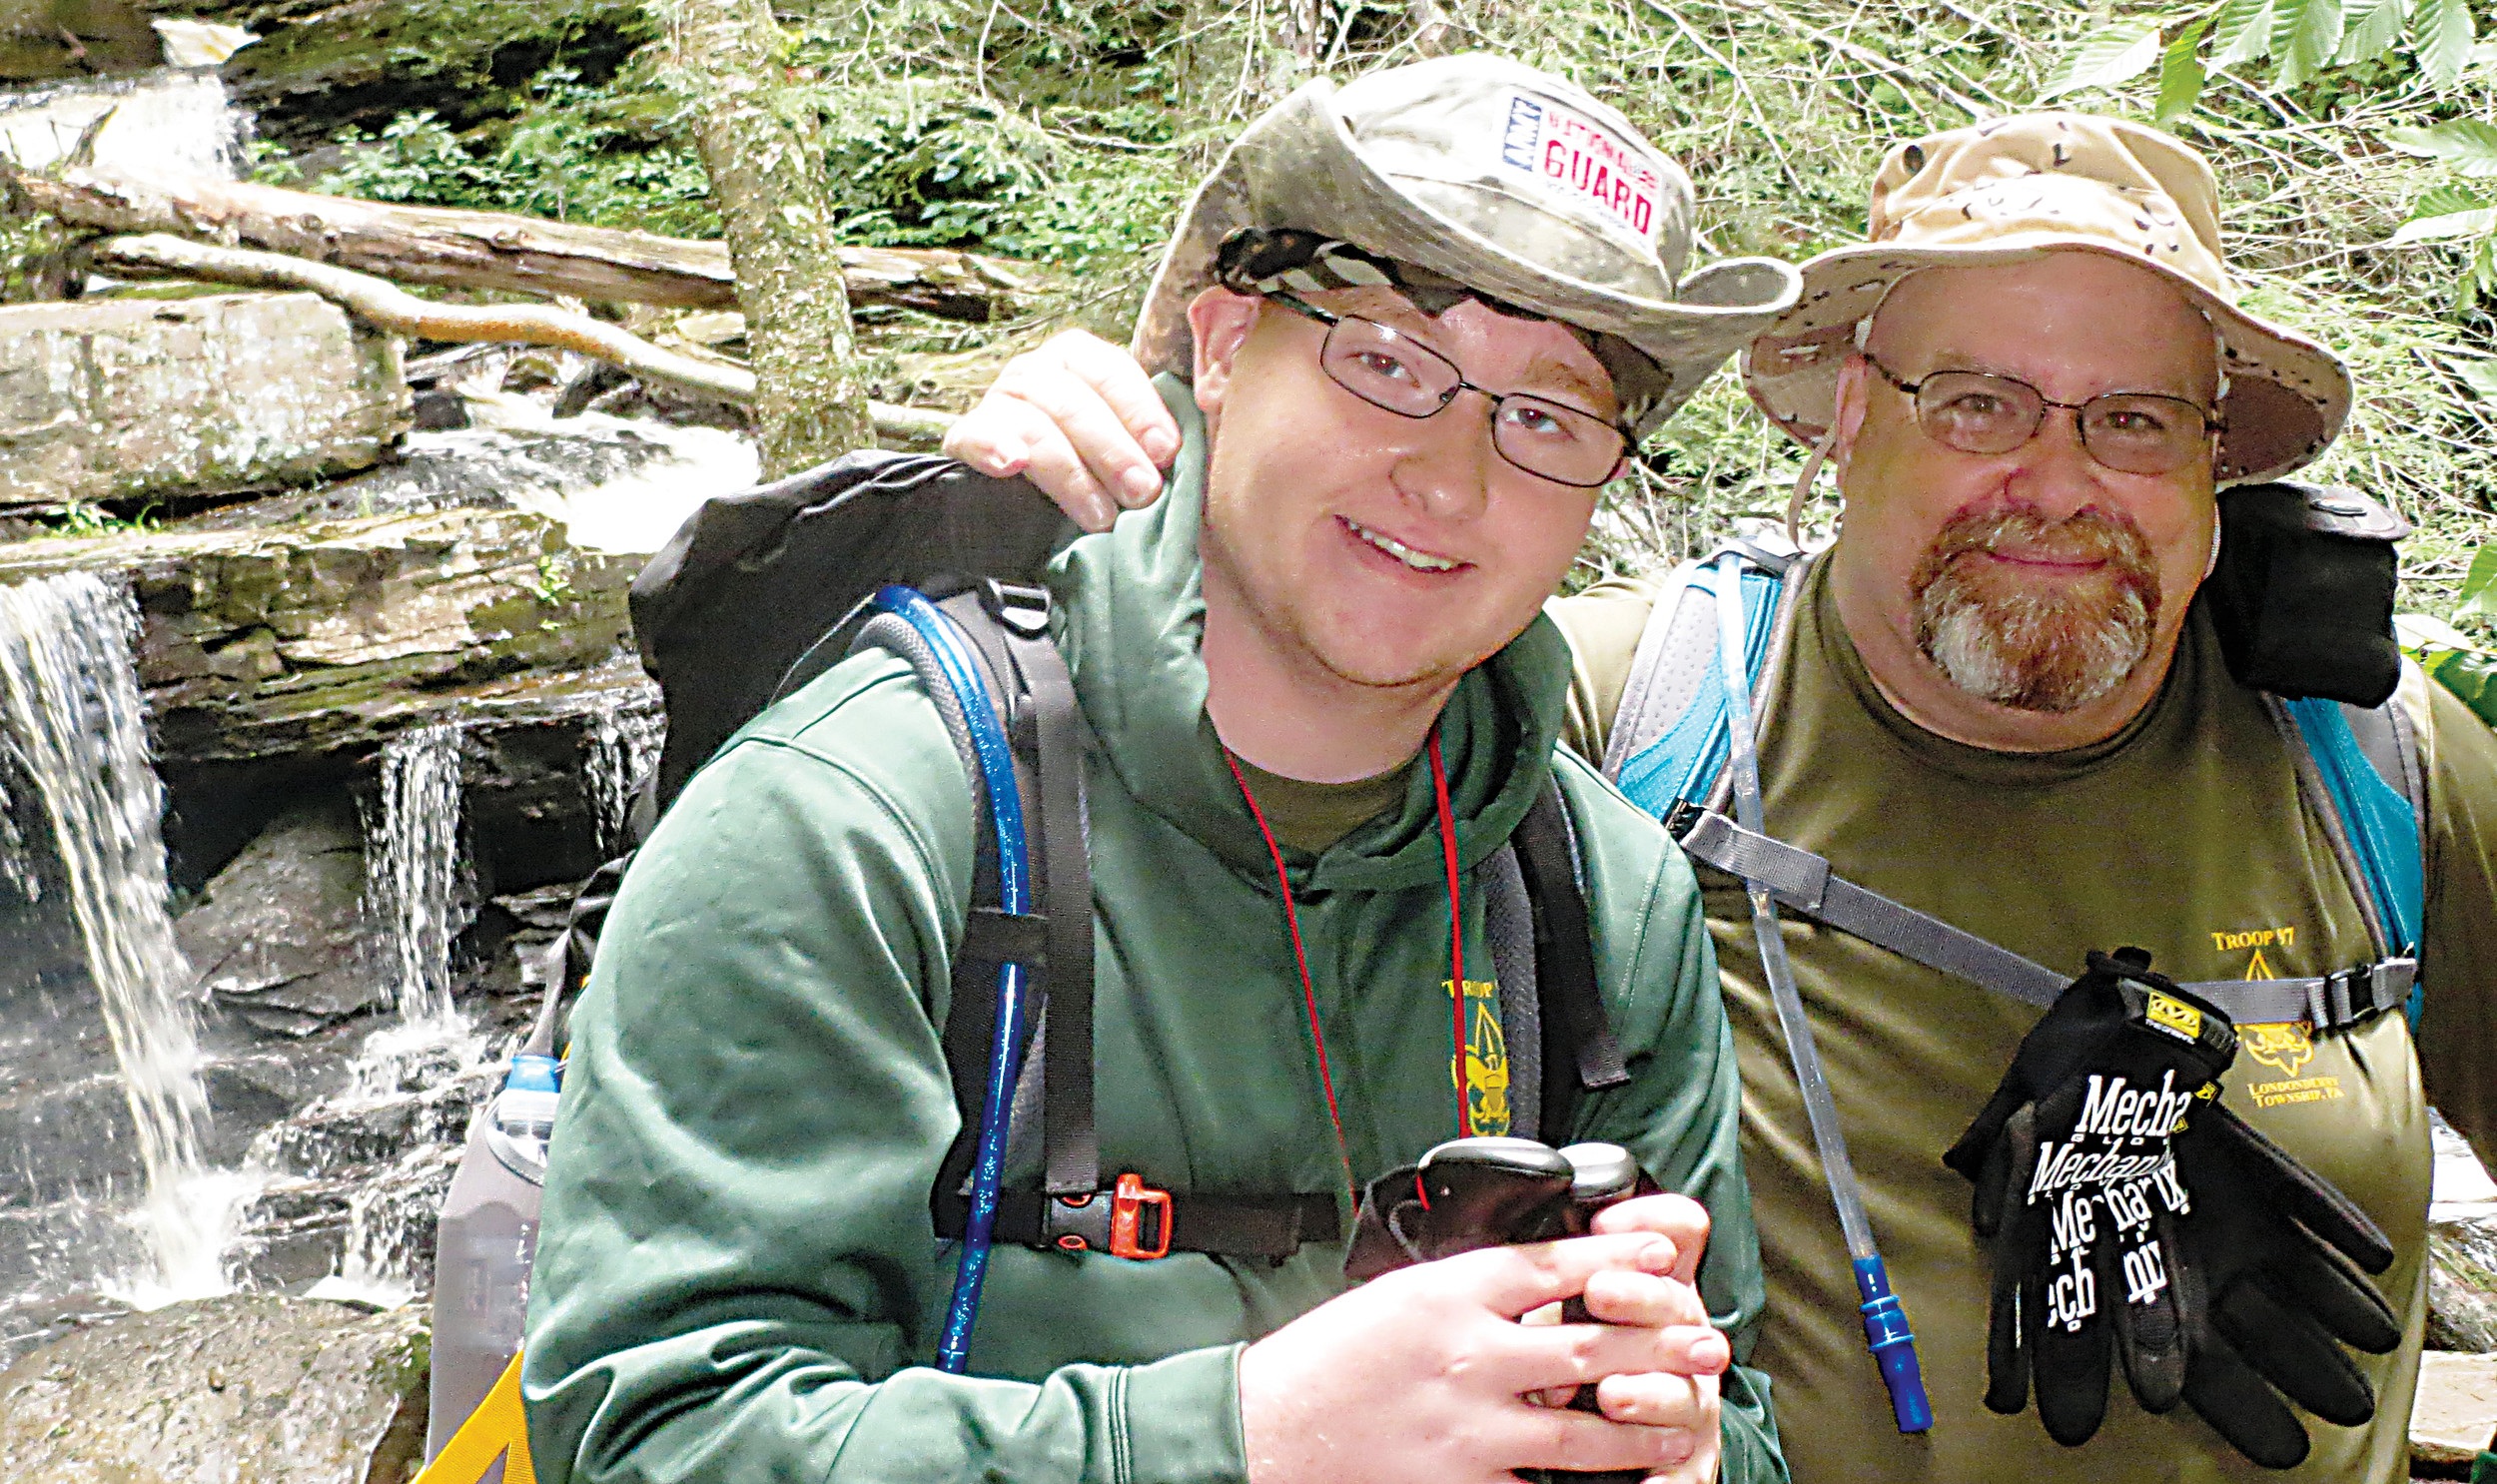 Kyle Hoyt and his father, Scout Master Chris Hoyt, love the outdoors.